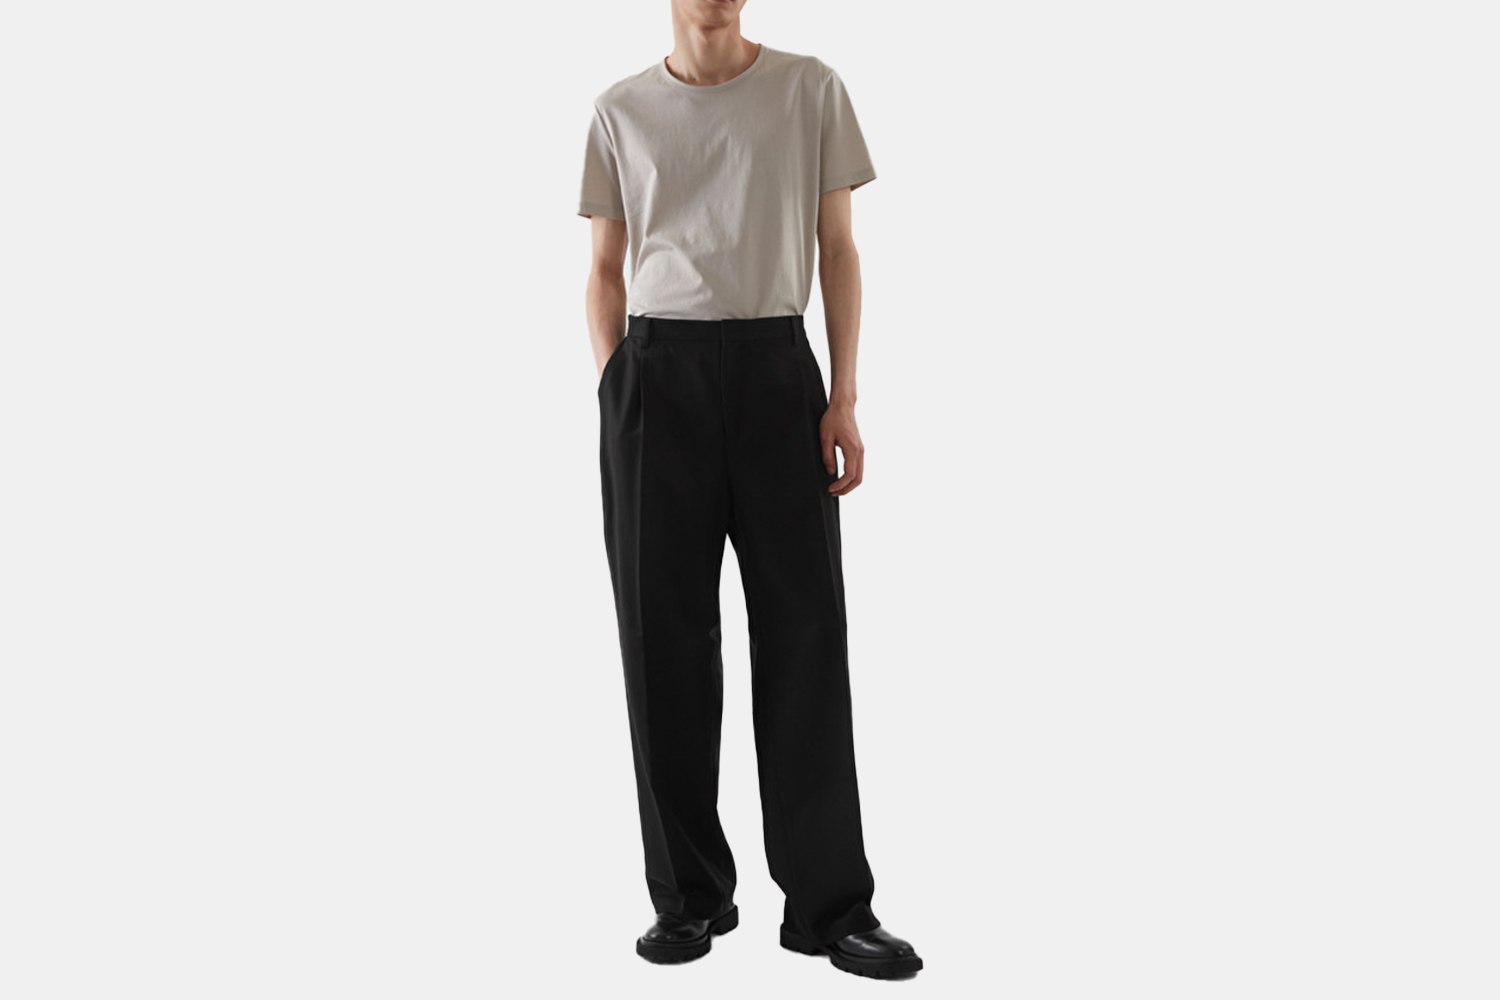 A model in a pair of wide legged black pants.